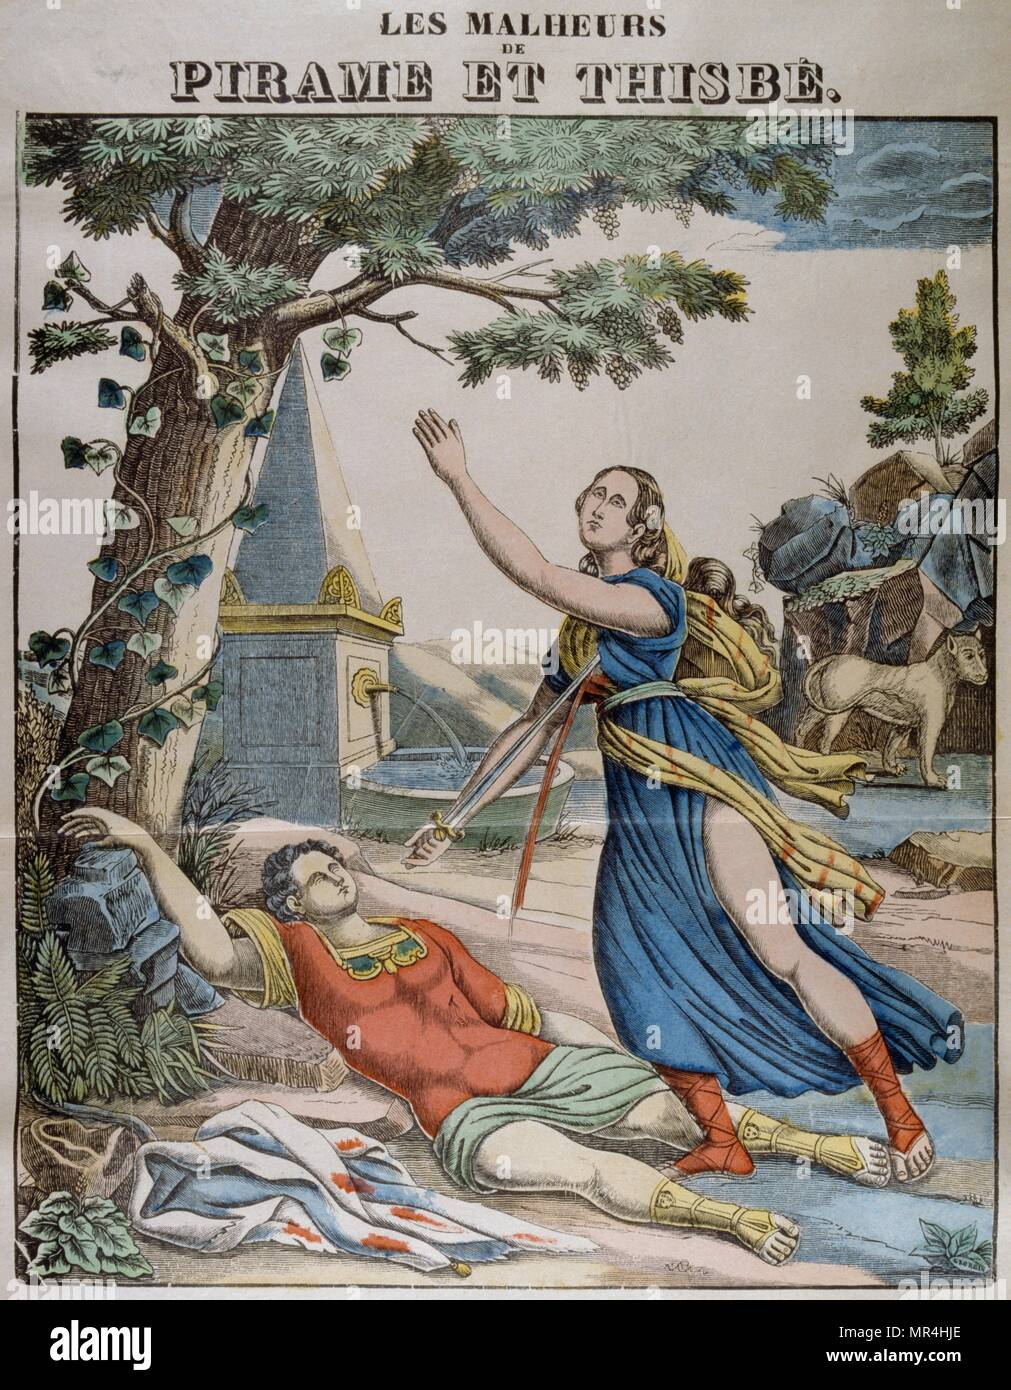 Coloured illustration showing Pyramus and Thisbe, a pair of ill-fated lovers whose story forms part of Ovid's Metamorphoses. French circa 1850 - Stock Image